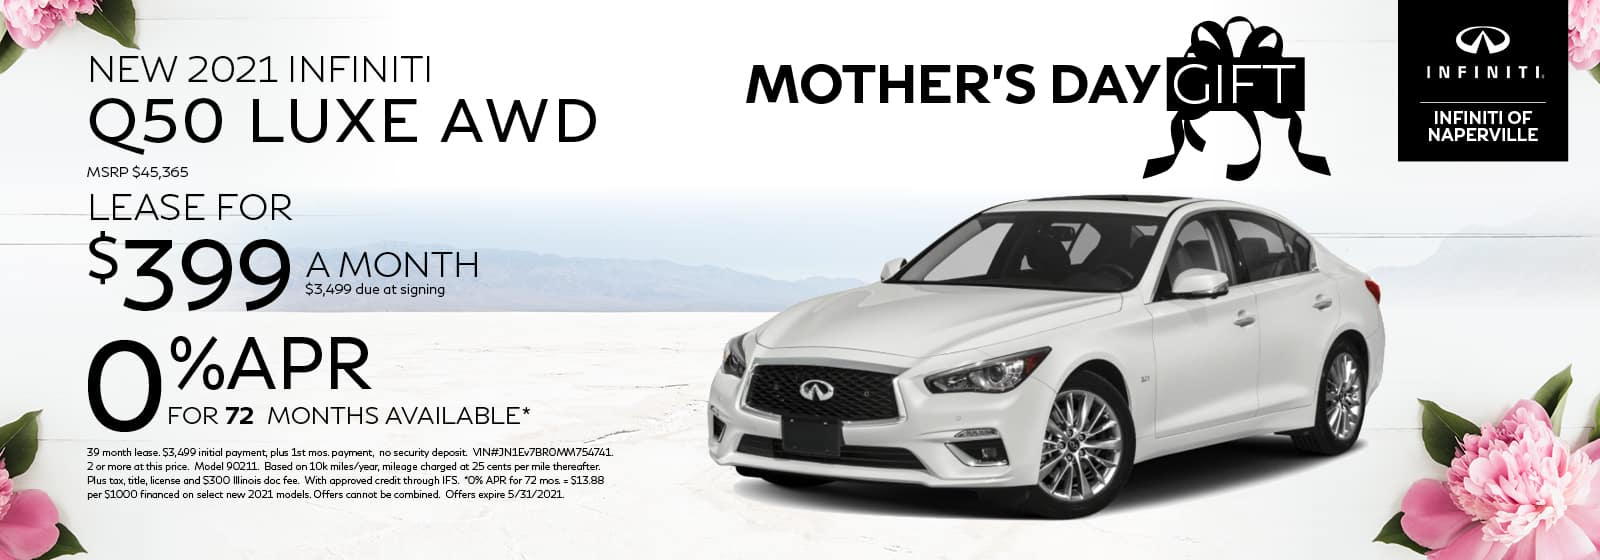 2021 INFINITI Q50 Lease or Finance Offer | INFINITI of Naperville